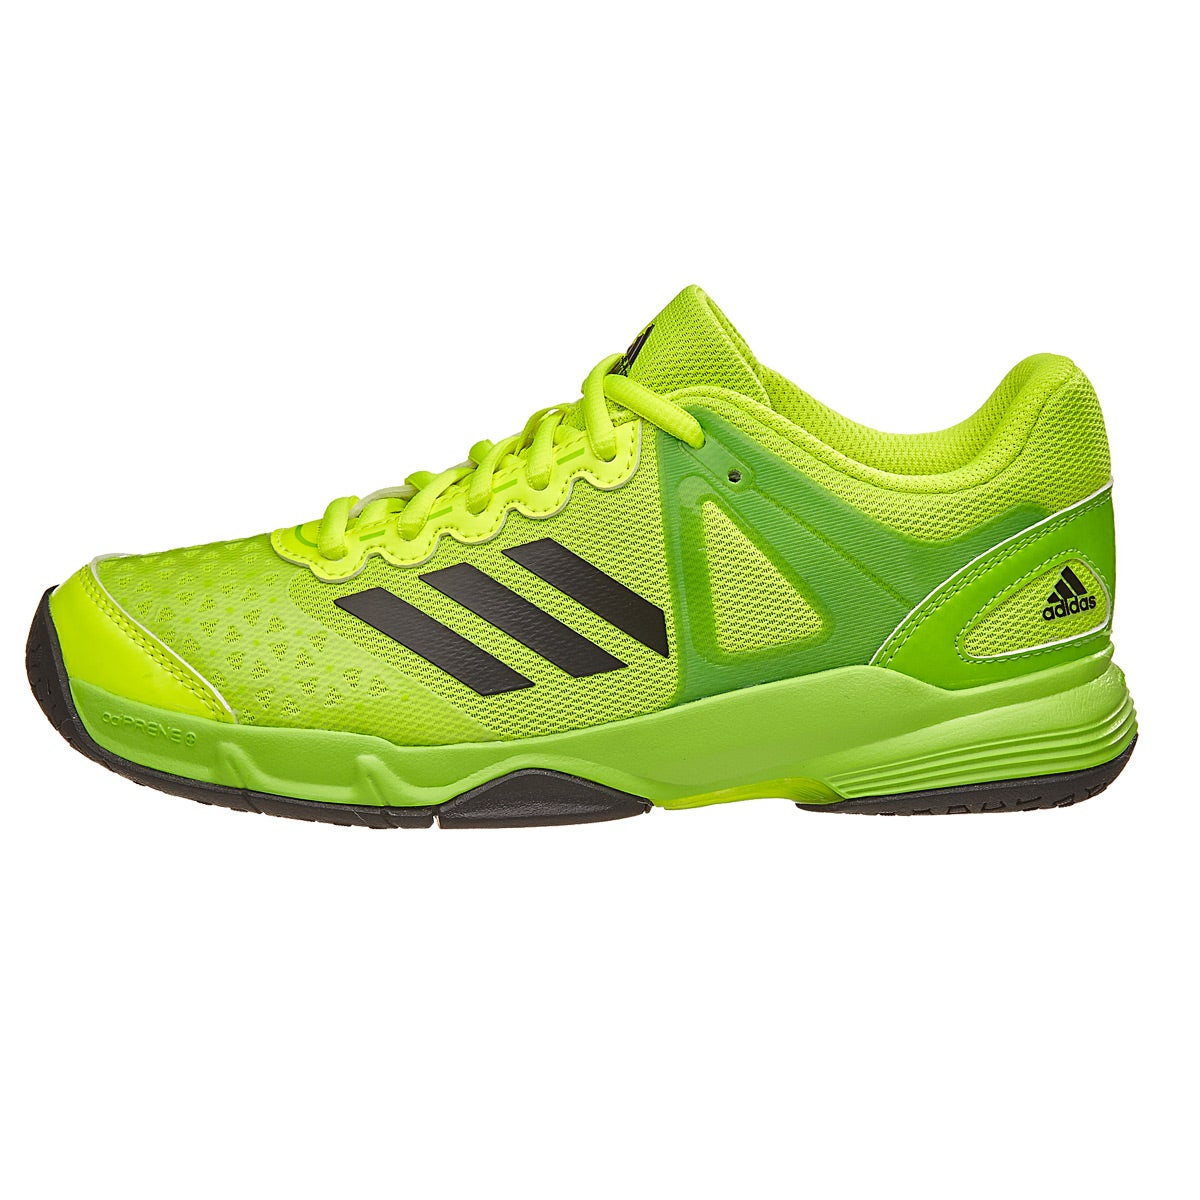 Adidas Neon Shoes